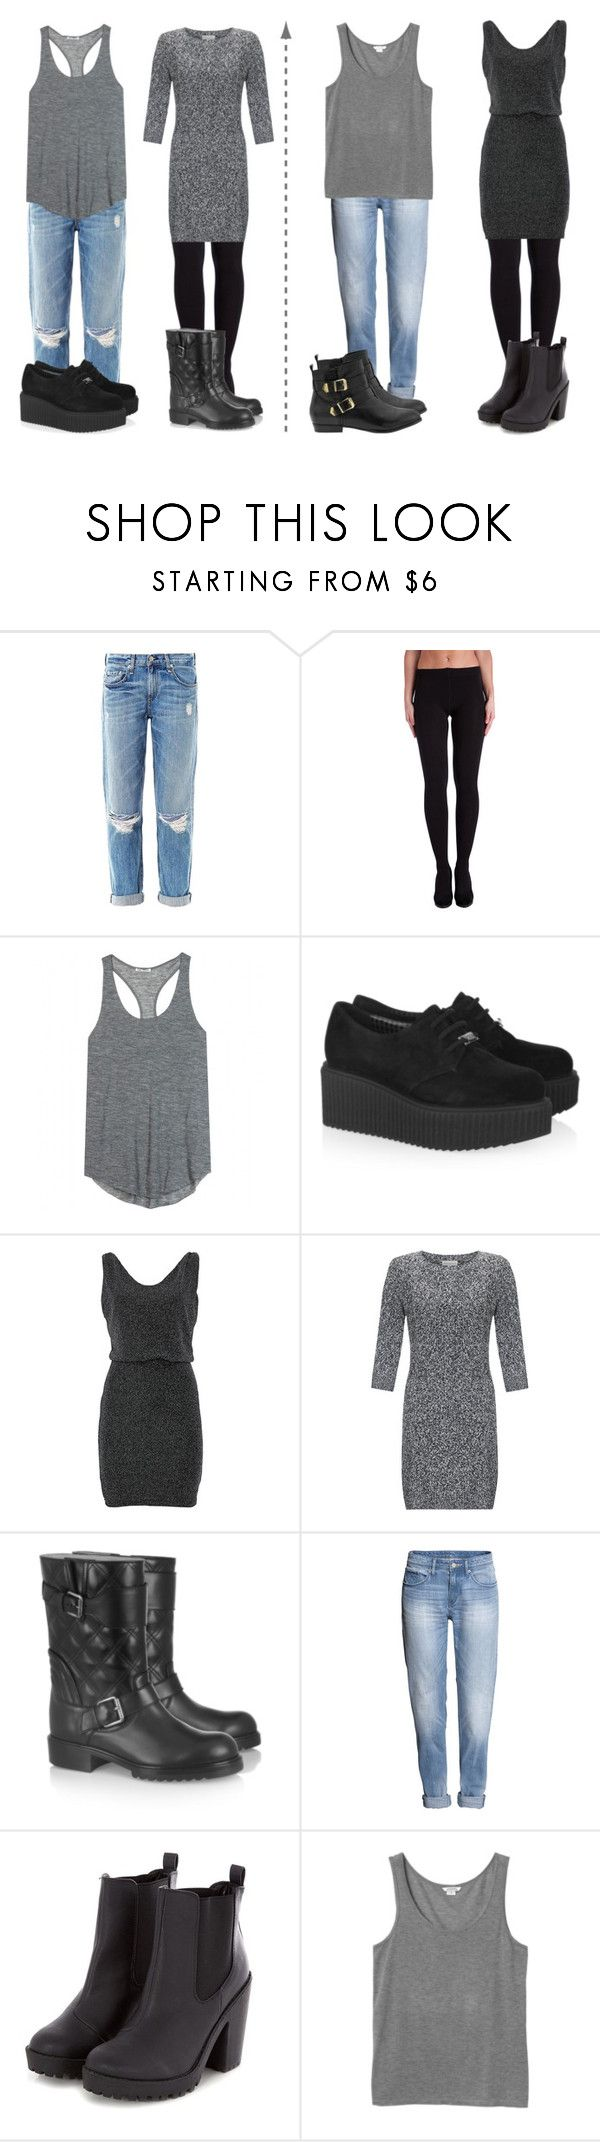 """""""Luksus VS Budget"""" by blogbyfifi ❤ liked on Polyvore featuring rag & bone, Pieces, Acne Studios, Karl Lagerfeld, VILA, Monsoon, Marc Jacobs, H&M, Monki and ALDO"""